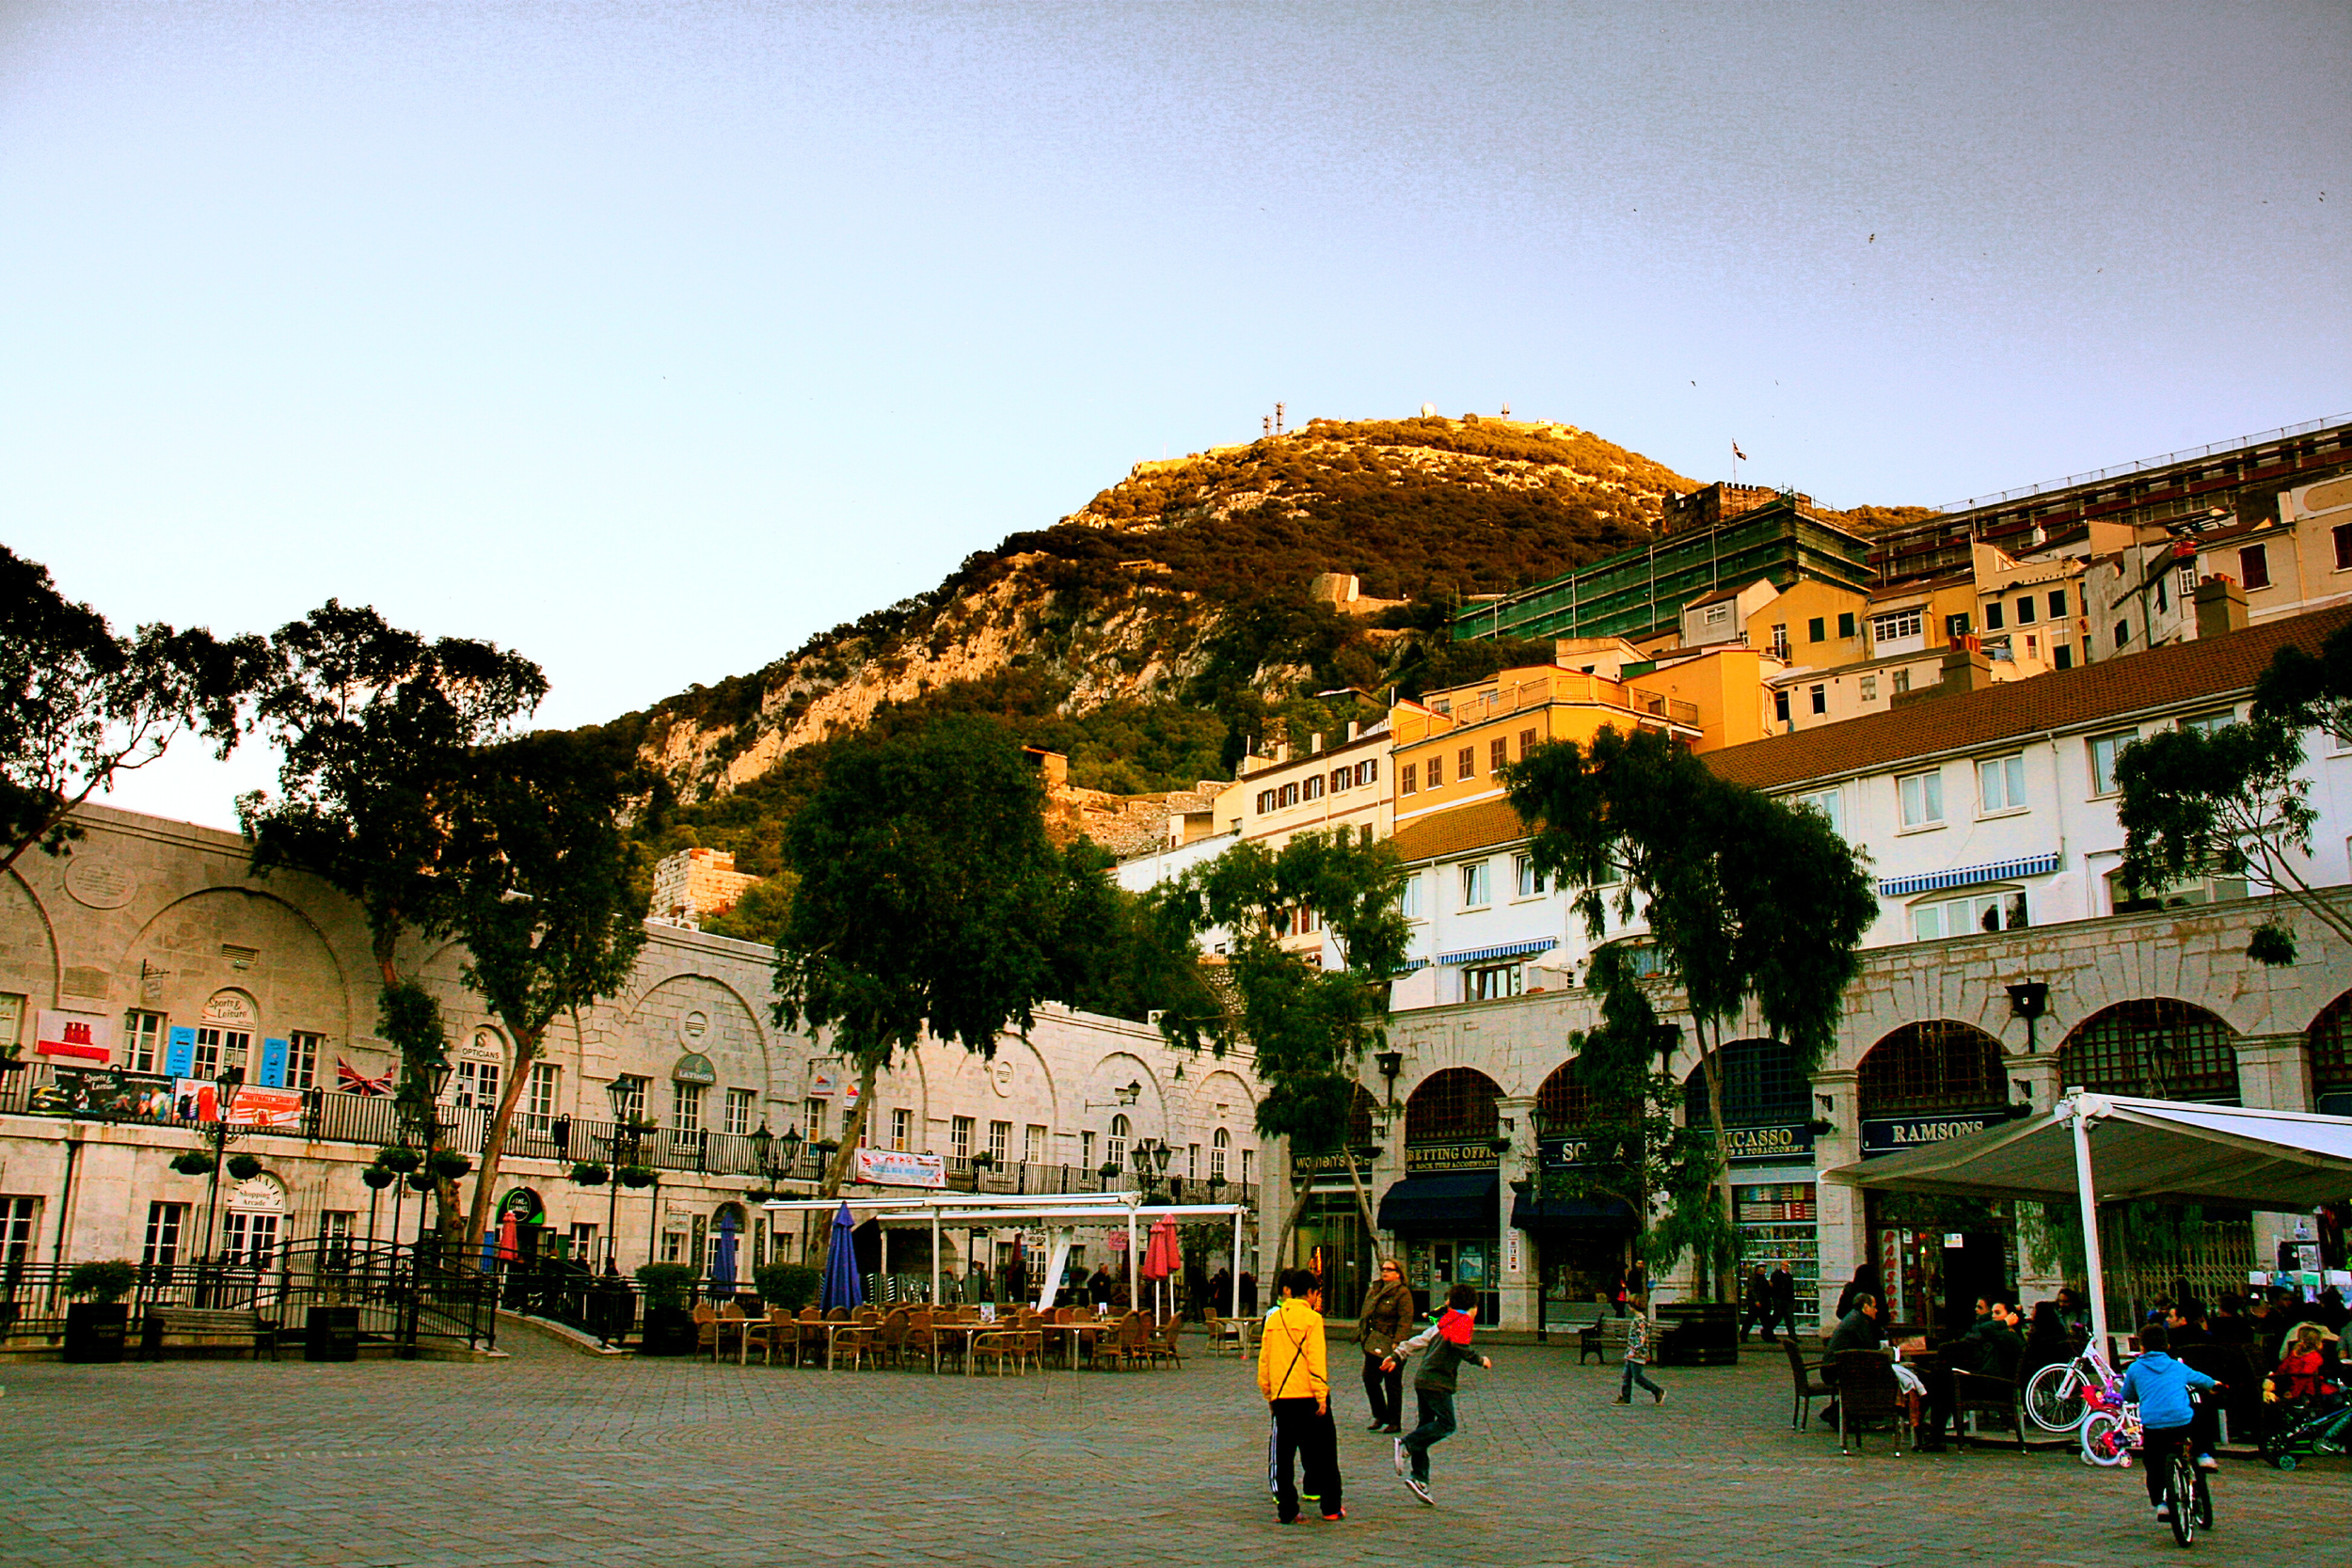 Grand Casemates Square.  Do you see the fortified barracks?